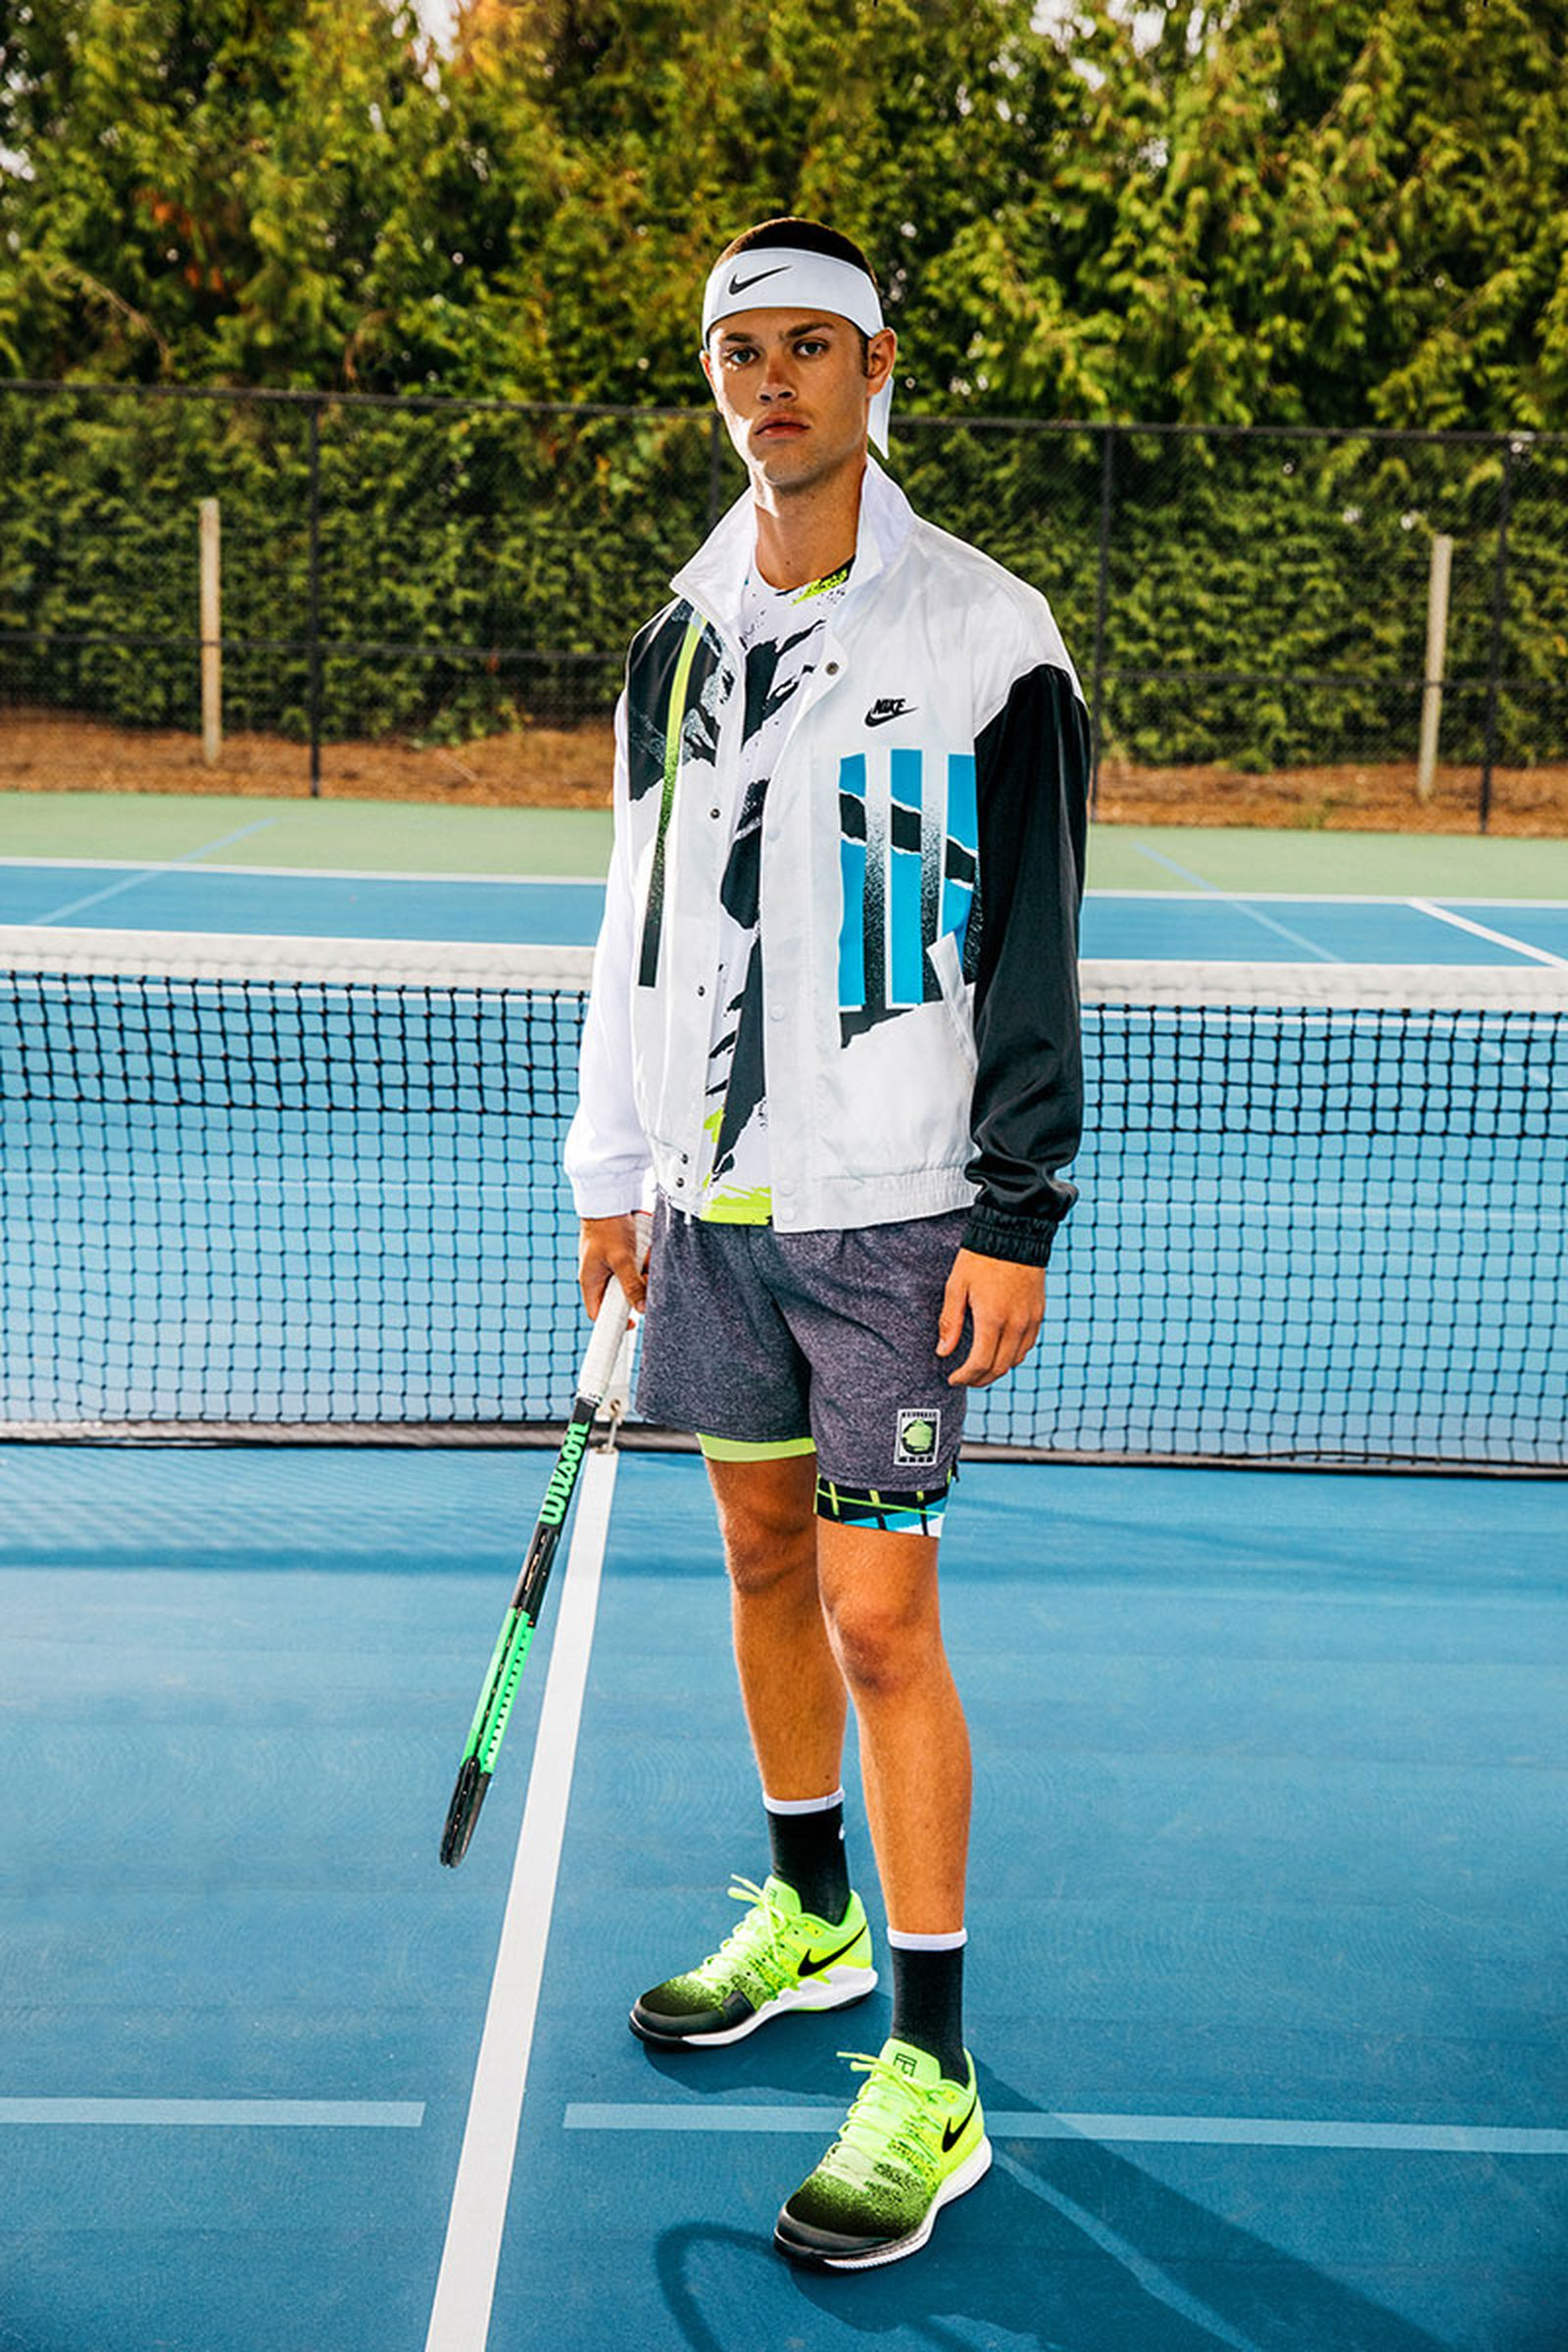 Nike S Challenge Court Collection Pays Homage To 90s Tennis